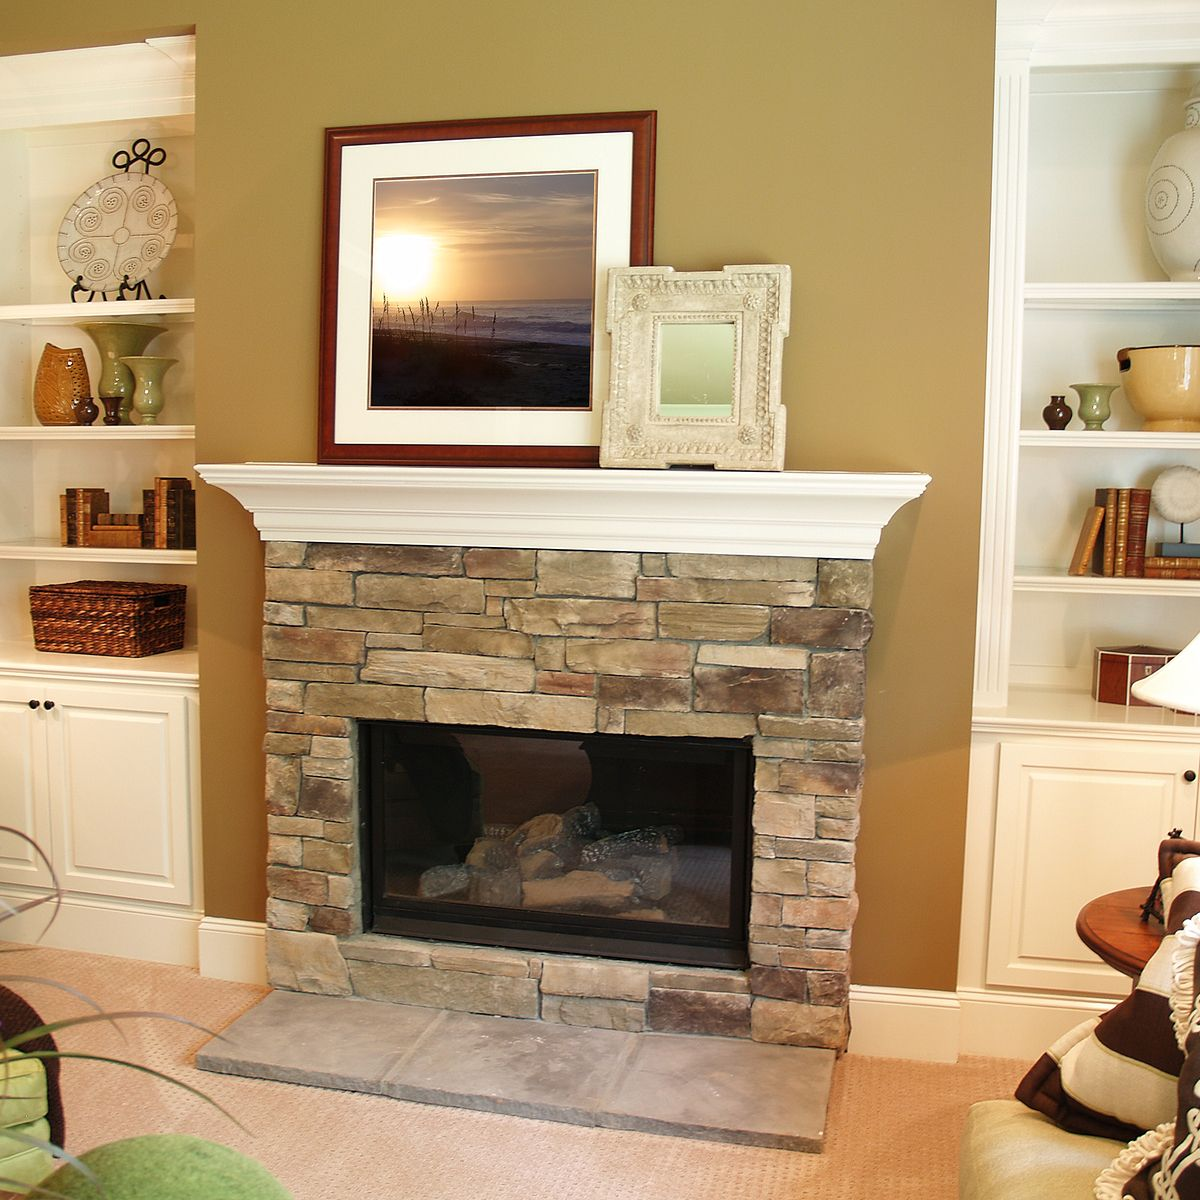 mantel makeover ideas add frames of different sizes and styles to